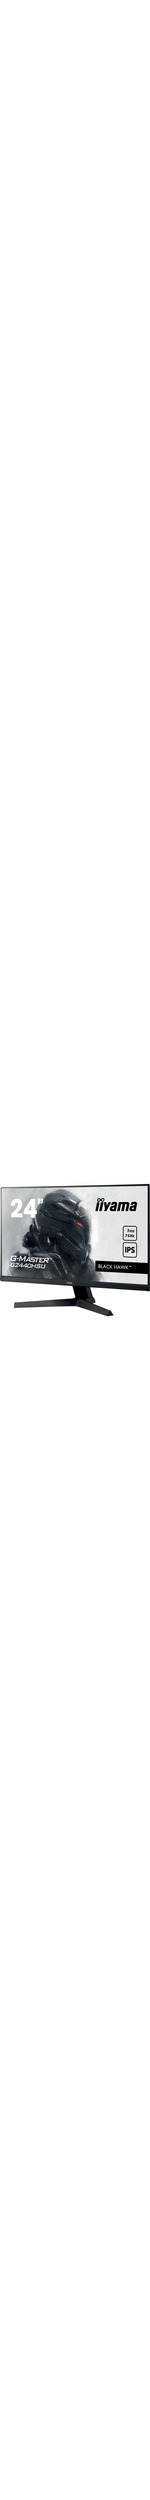 iiyama BLACK HAWK G-MASTER G2440HSU-B1 23.8And#34; Full HD LED LCD Monitor - 16:9 - Matte Black